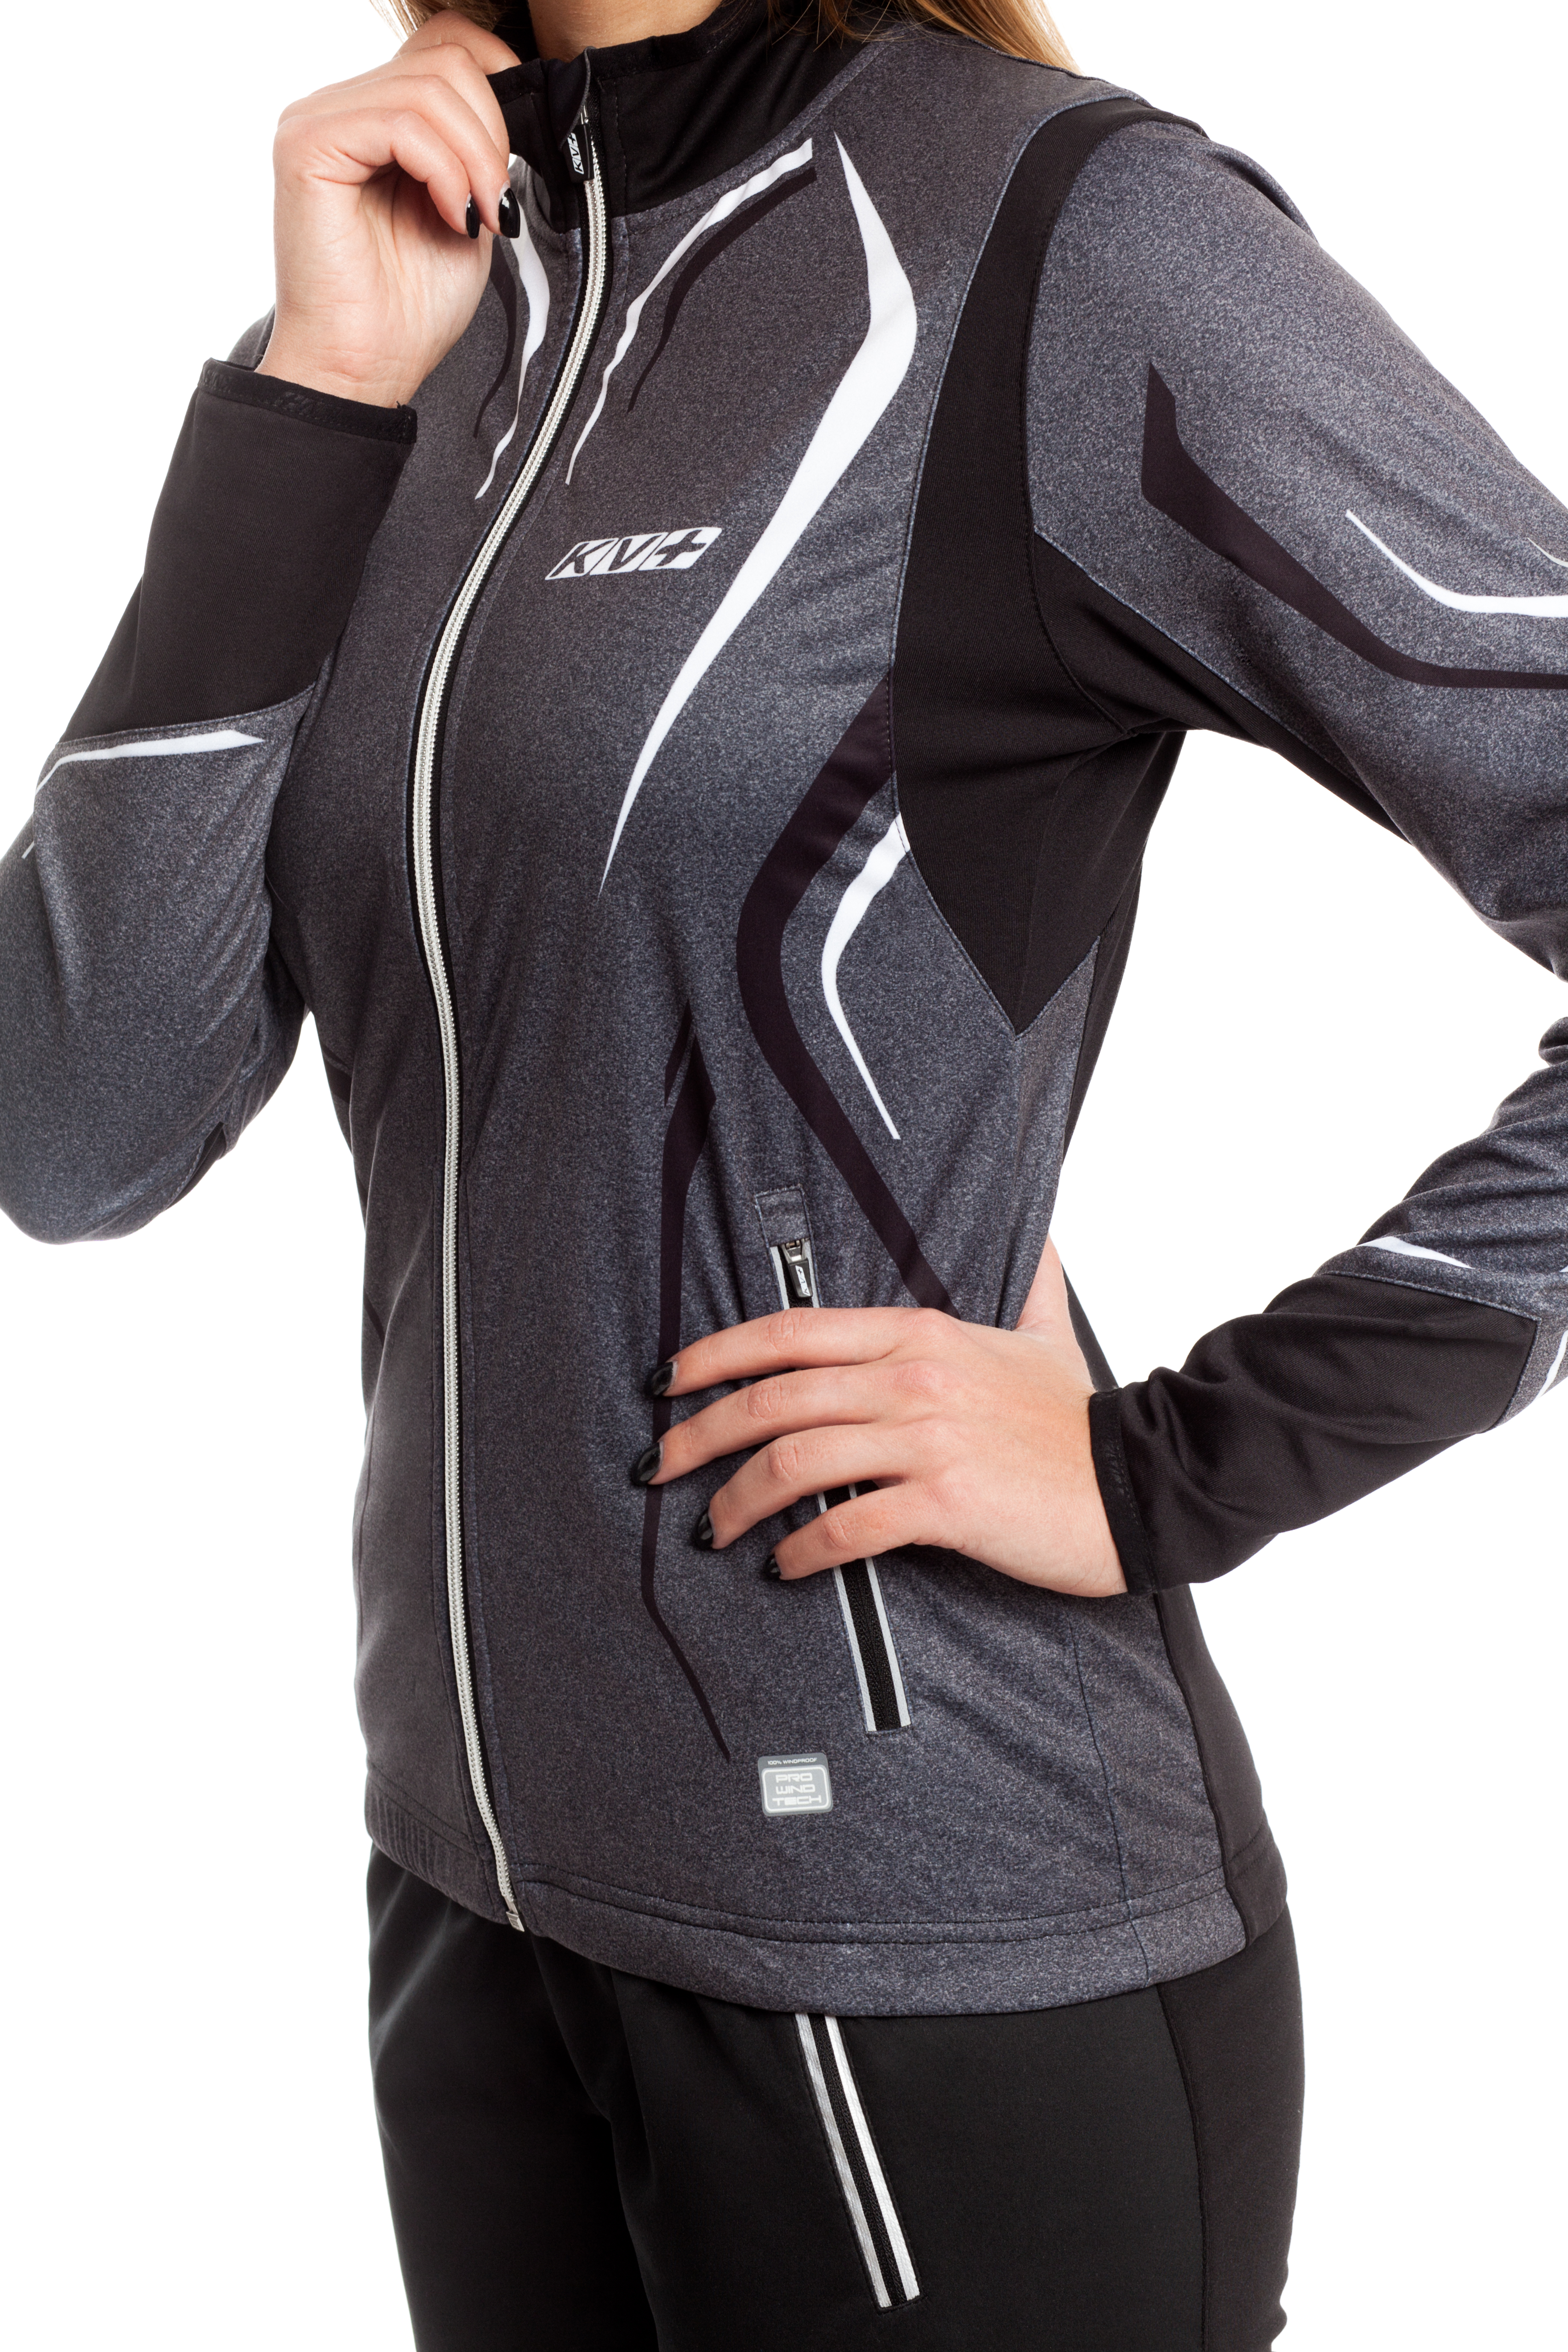 EXCLUSIVE JACKET WOMAN (gray)